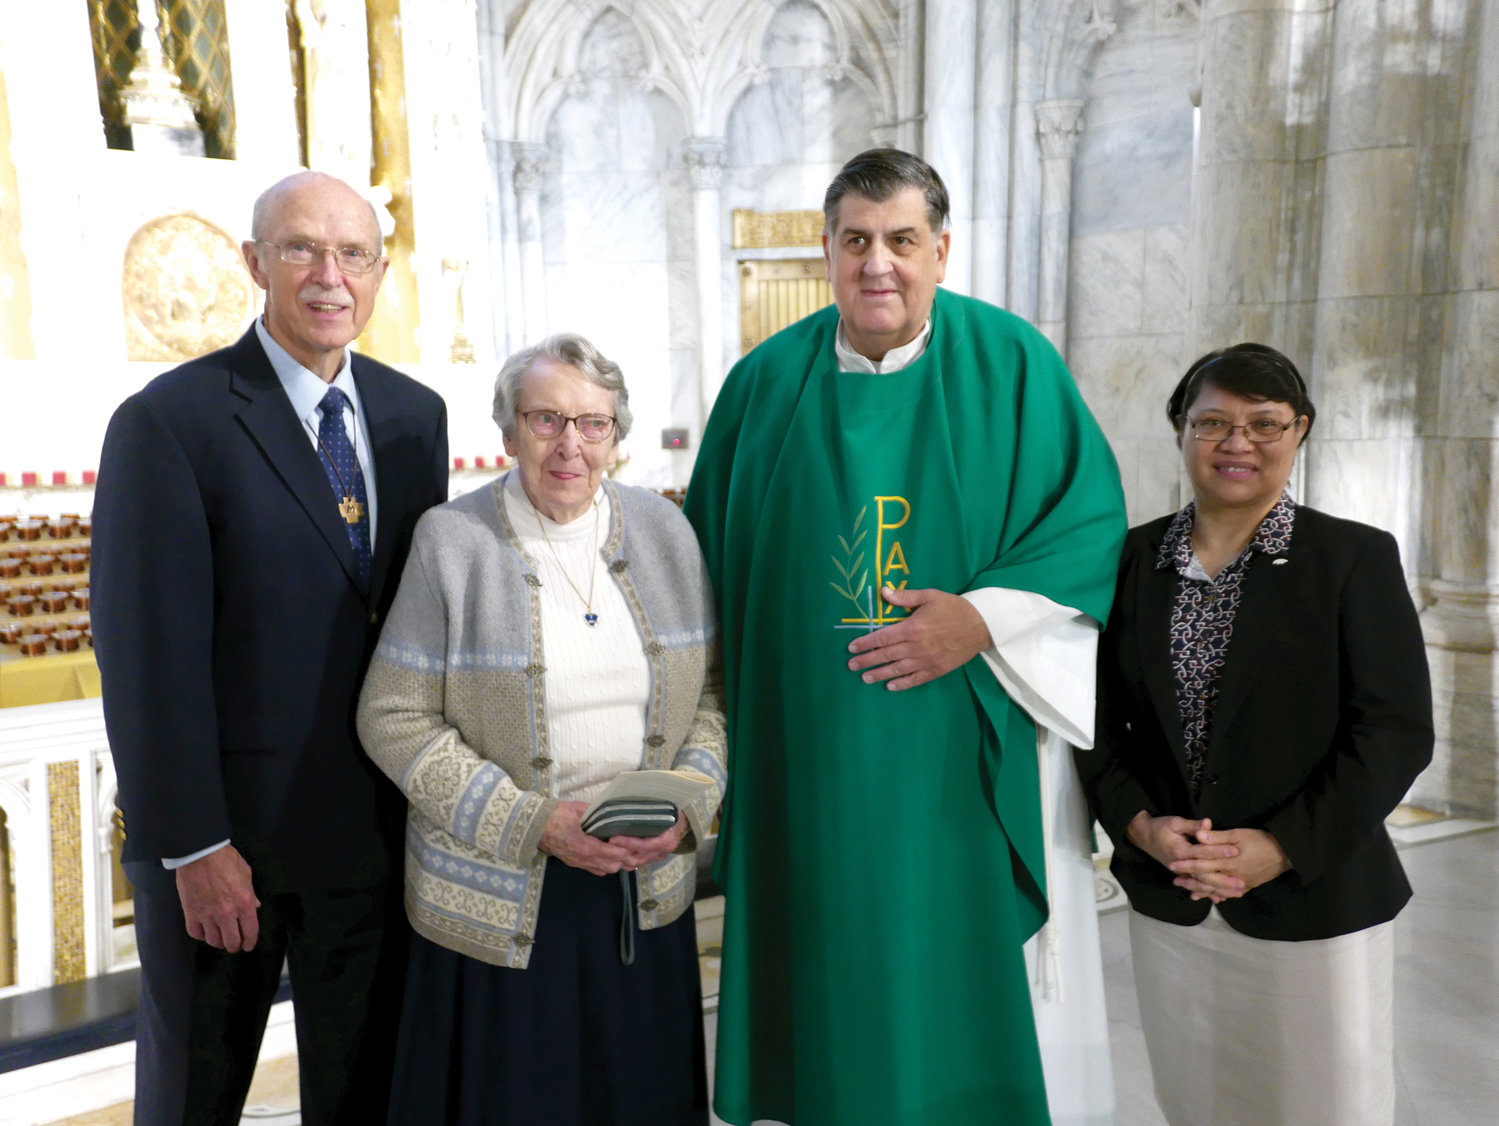 Msgr. Marc Filacchione, director of the archdiocesan Office of the Society for the Propagation of the Faith, greets Brother David Cooney, F.M.S., Sister Margaret Rogers, S.H.C.J, and Lourdes Victoria of the Propagation office staff after the World Mission Sunday Mass at St. Patrick's Cathedral Oct. 20. Brother Cooney and Ms. Victoria were the lectors, and Sister Margaret offered the prayers of the faithful at the Mass.